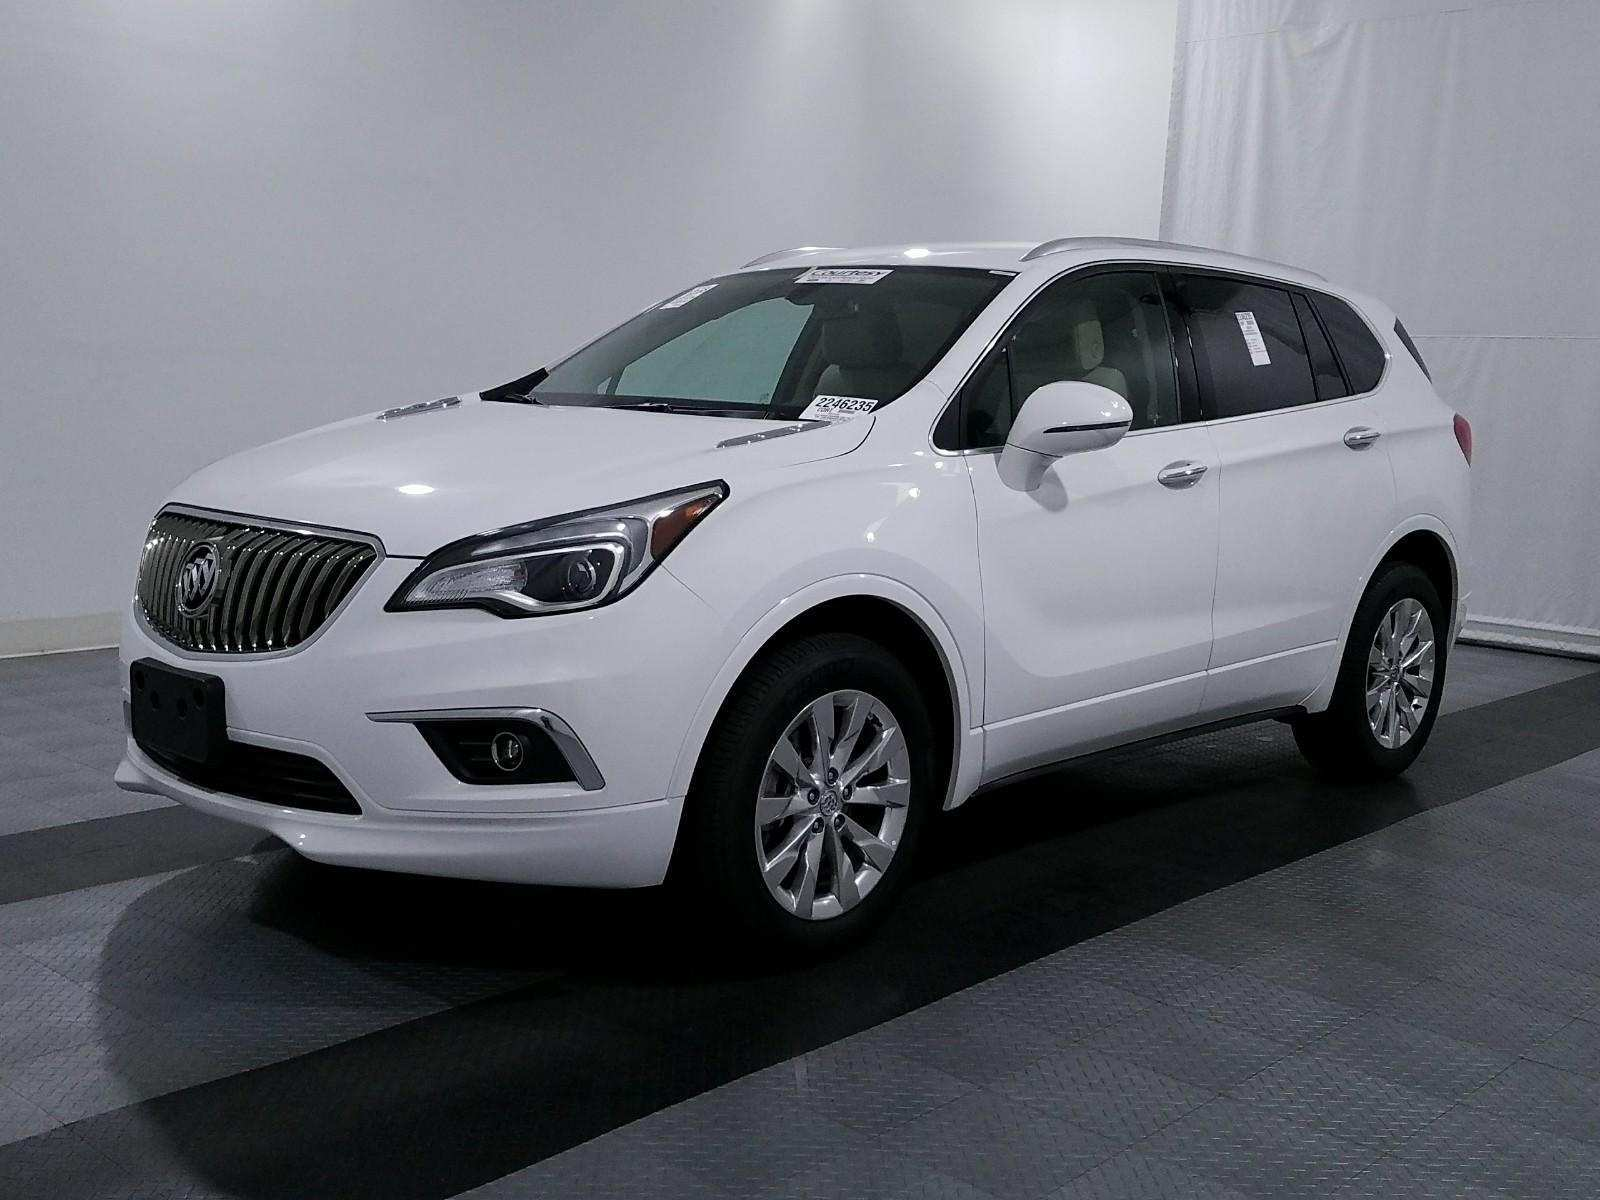 16 Concept of 2020 Buick Envision Specs New Concept by 2020 Buick Envision Specs